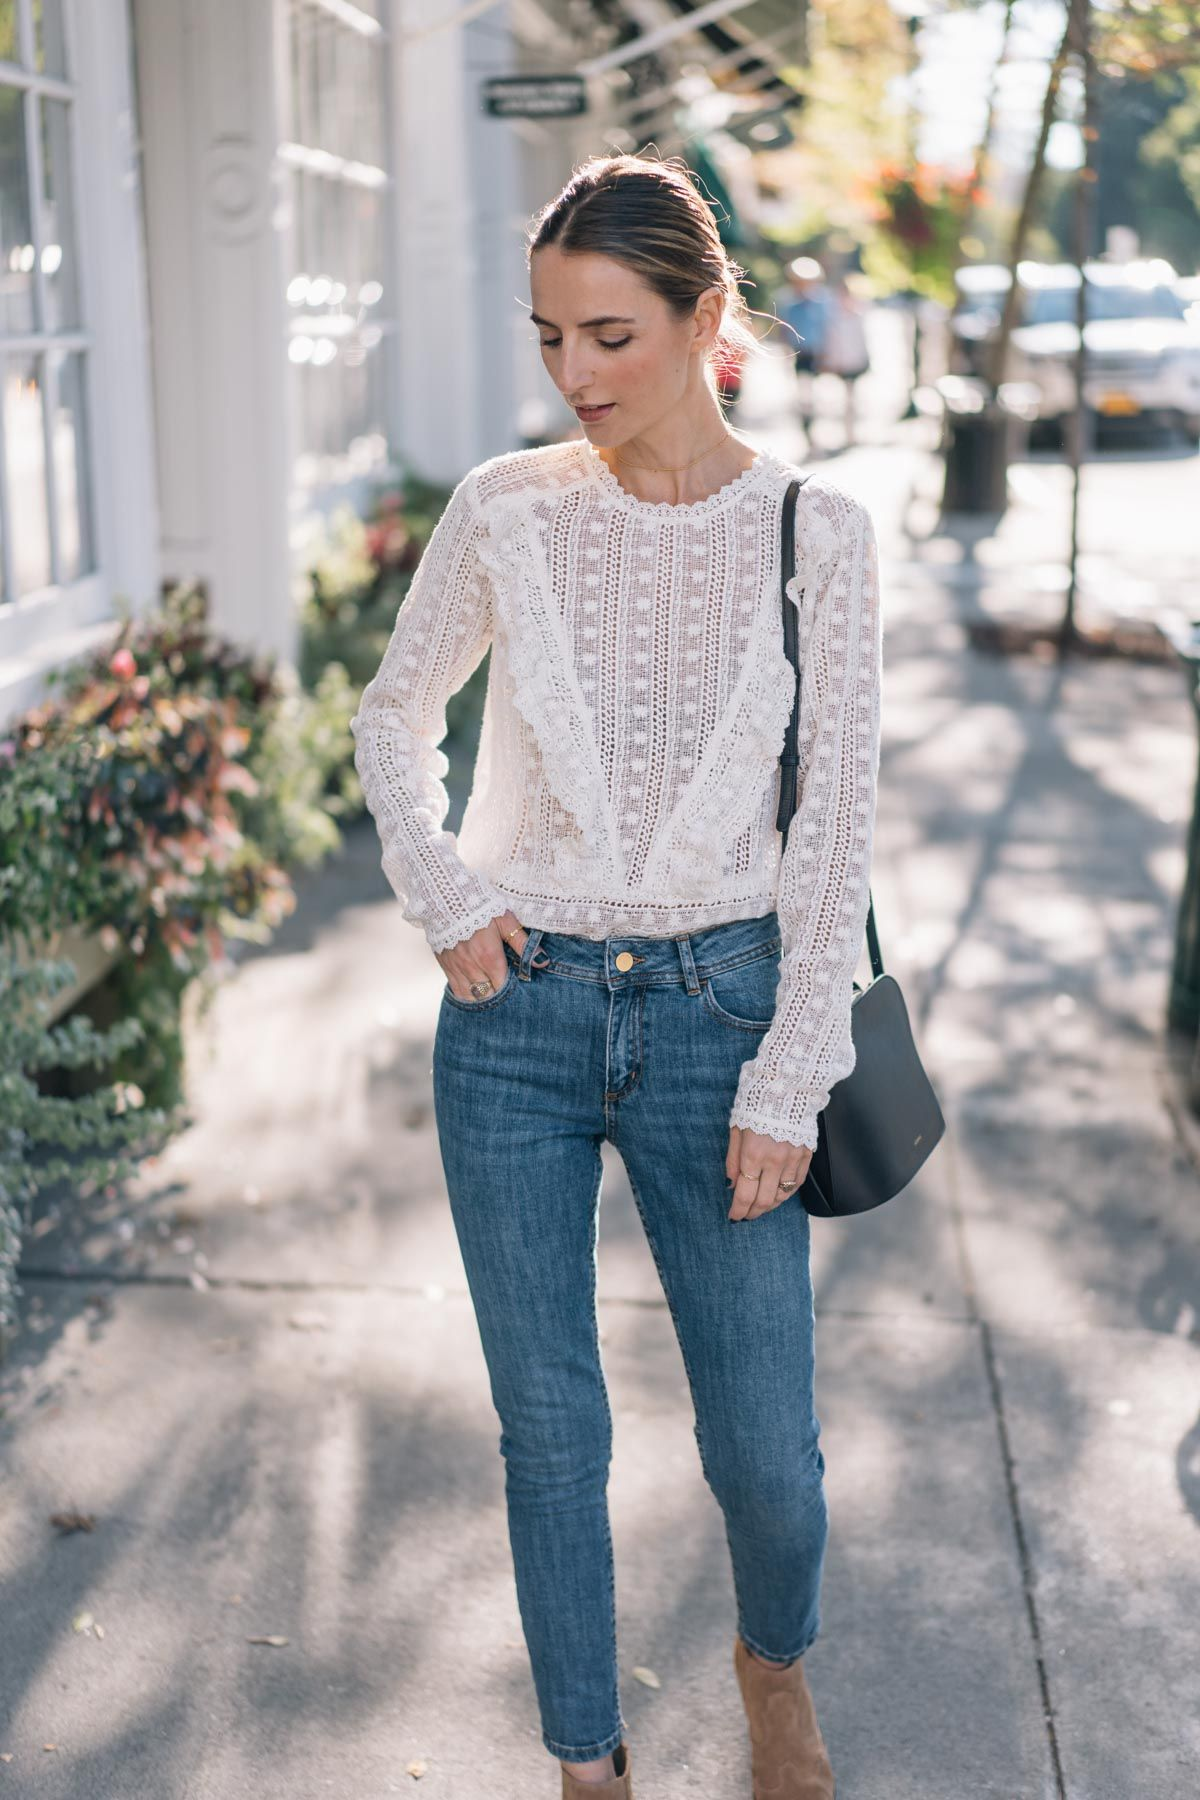 c563cedcb5007 Jess Ann Kirby wears a Sezane Madeleine blouse and the slim jean in  Providence